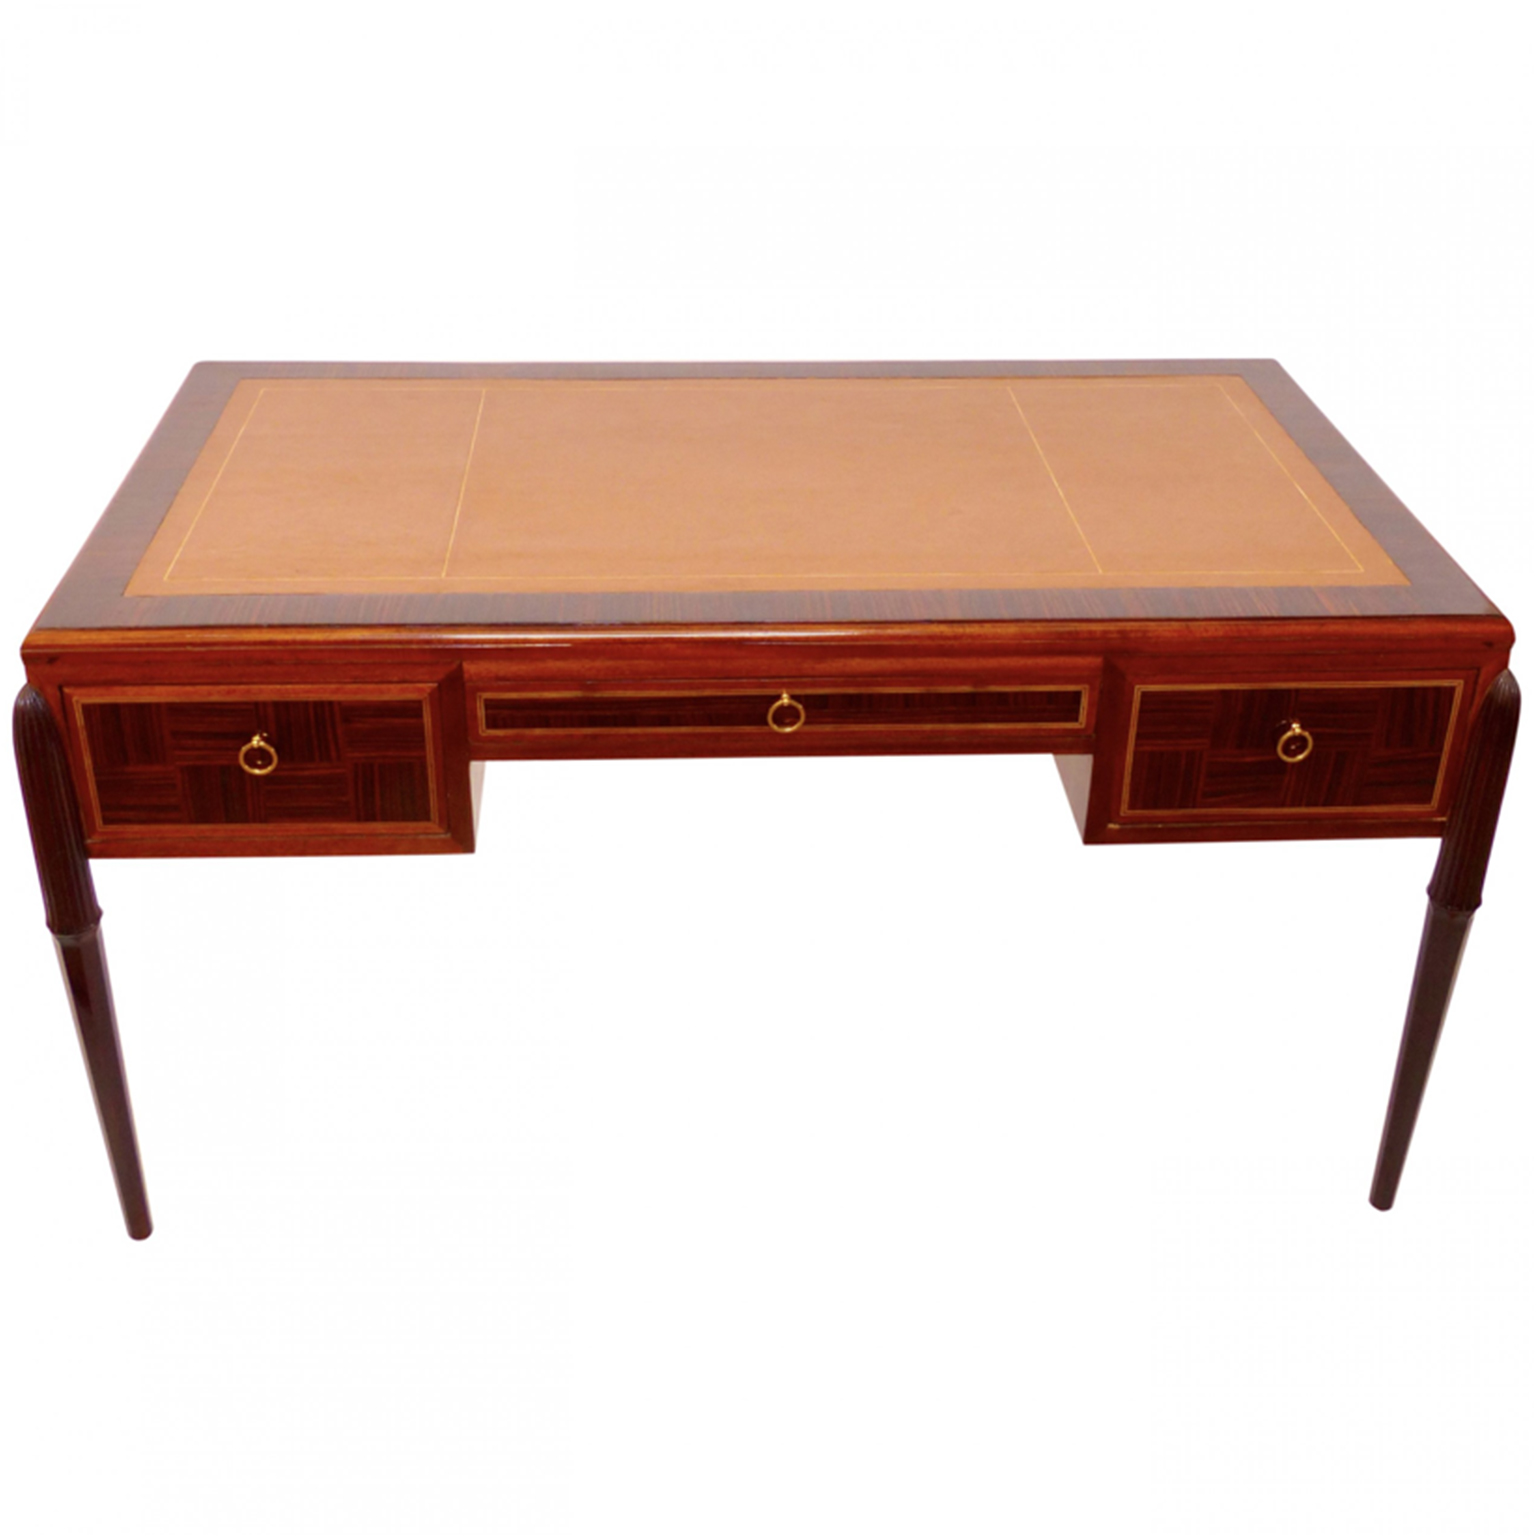 An early Art Deco desk in brown Macassar wood with leather top and brass ring pulls.